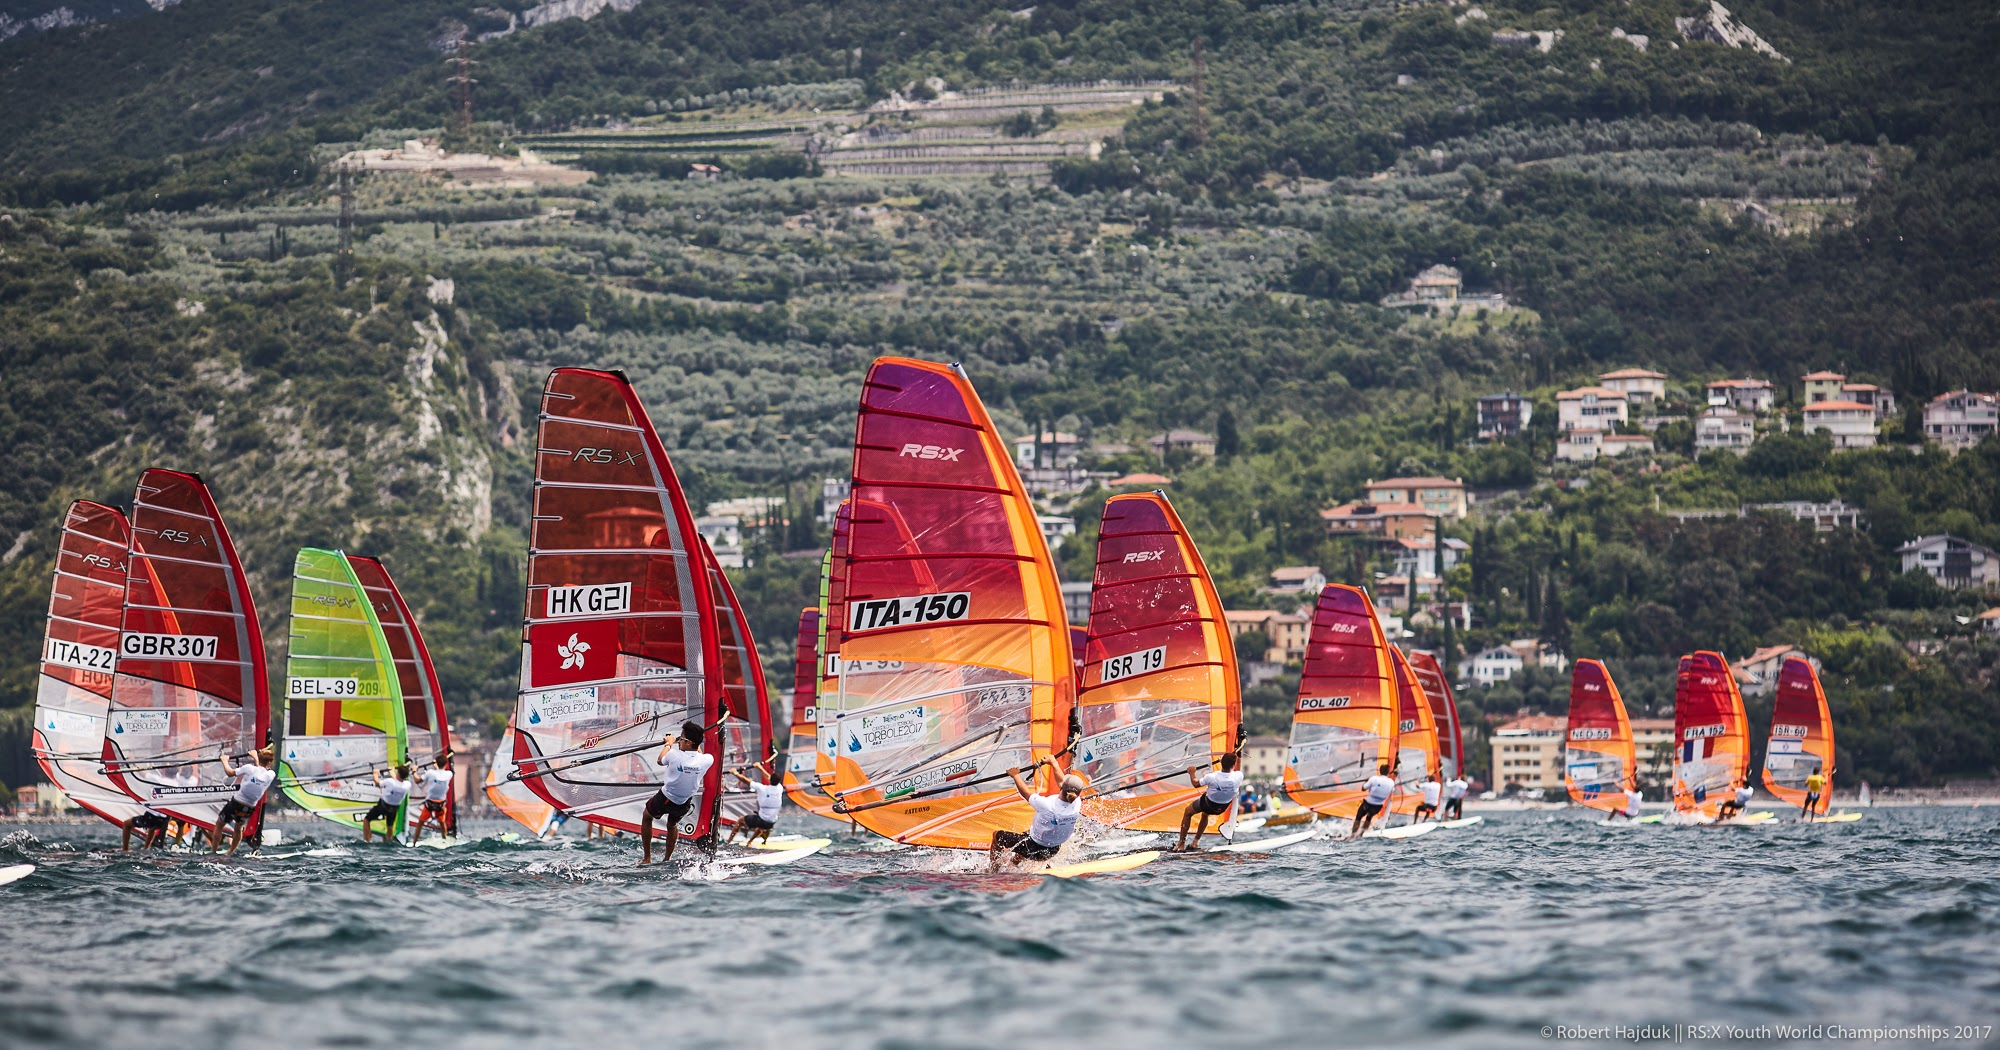 2017 RS:X Youth World Championships || 2017-06-28, Torbole, Lake Garda, Italy || © Copyright 2017 || RS:X Class: Robert Hajduk - ShutterSail.com || All Rights Reserved || srcset=